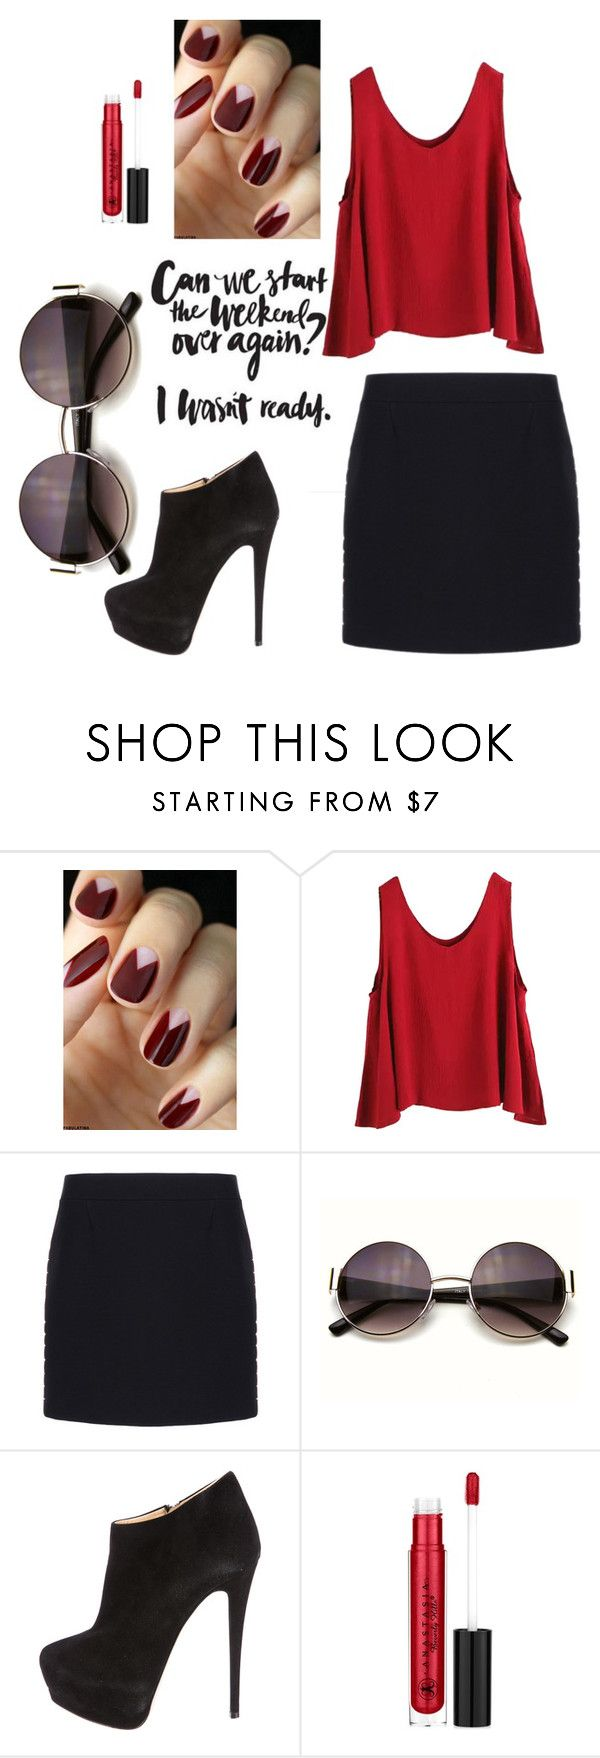 """Untitled #1"" by kiajeje ❤ liked on Polyvore featuring WithChic, Balenciaga, Giuseppe Zanotti and Anastasia Beverly Hills"